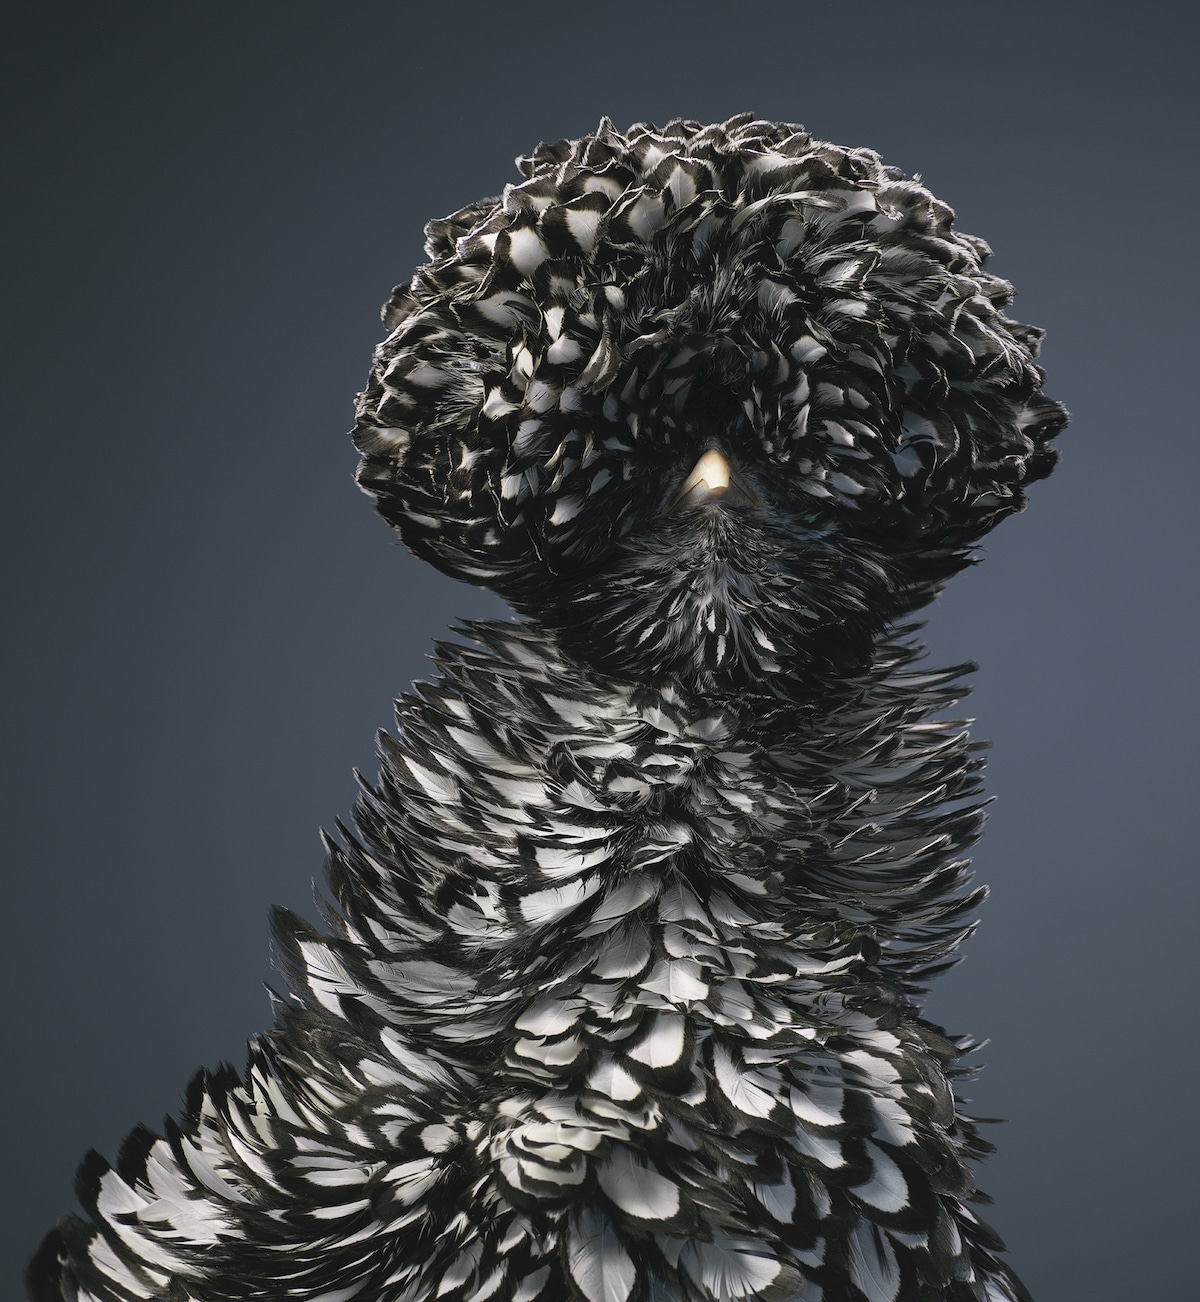 Silver Laced Poland by Tim Flach